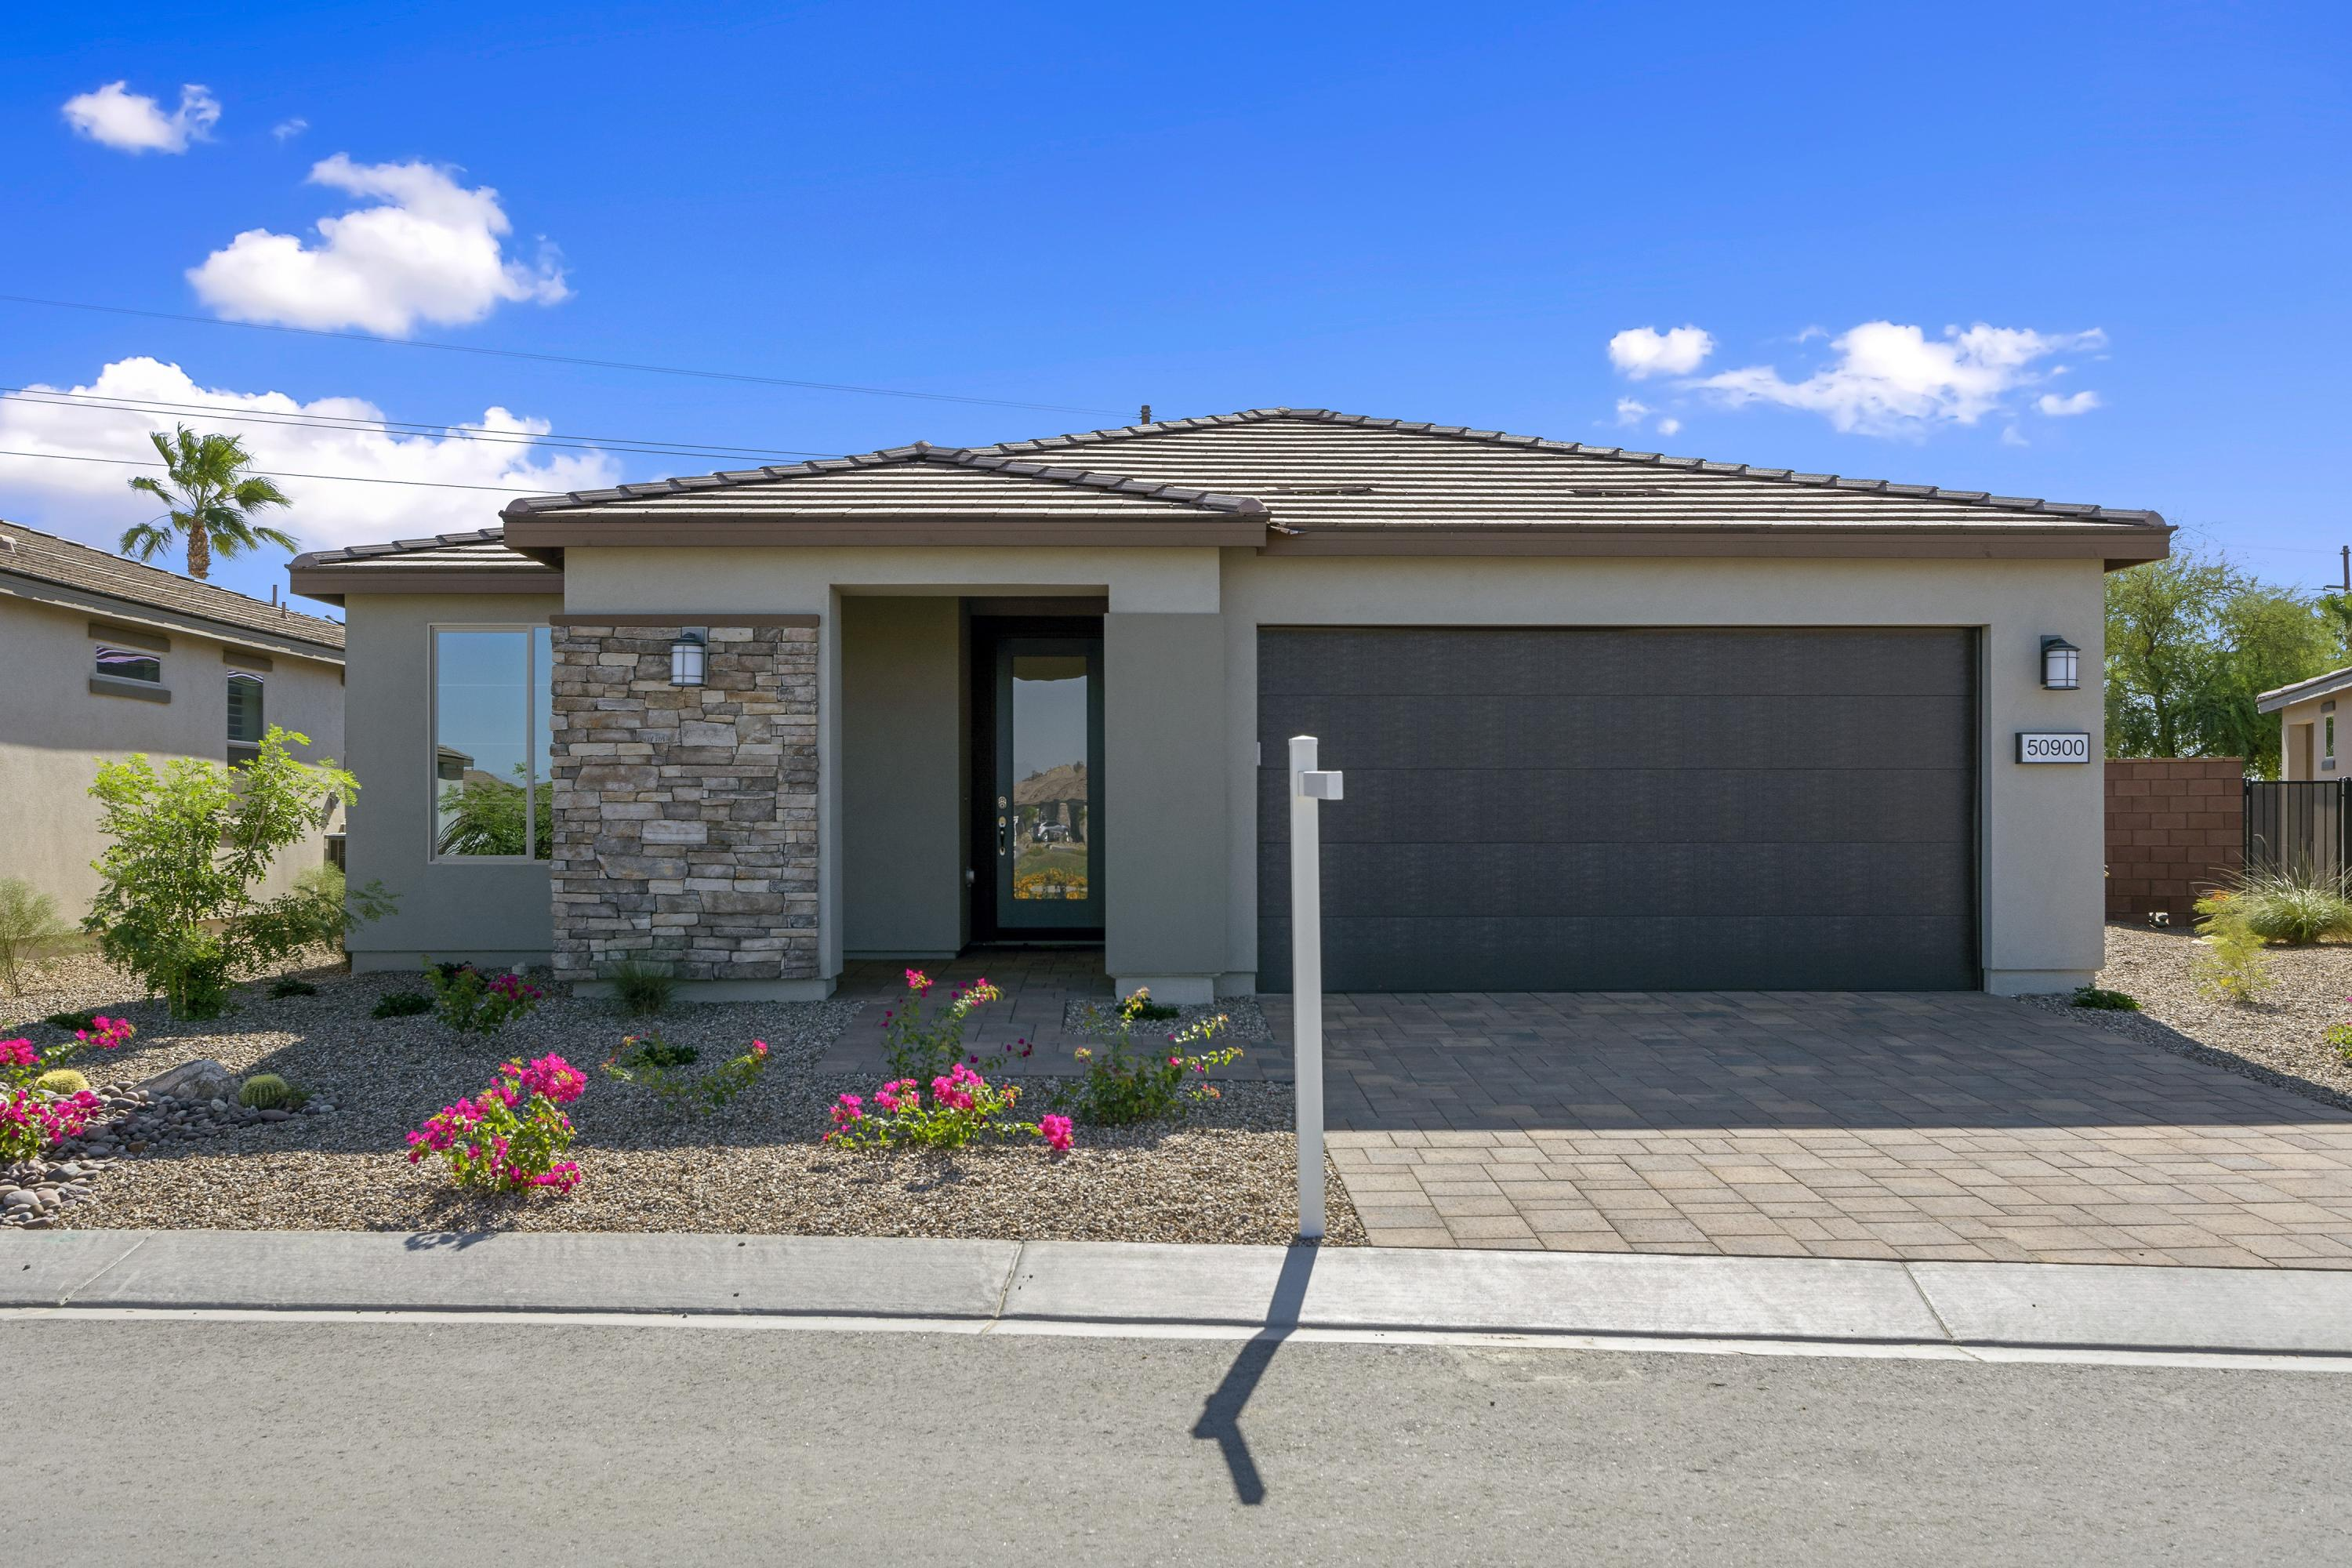 Photo of 50900 Monterey Canyon (Lot 5009) Drive, Indio, CA 92201